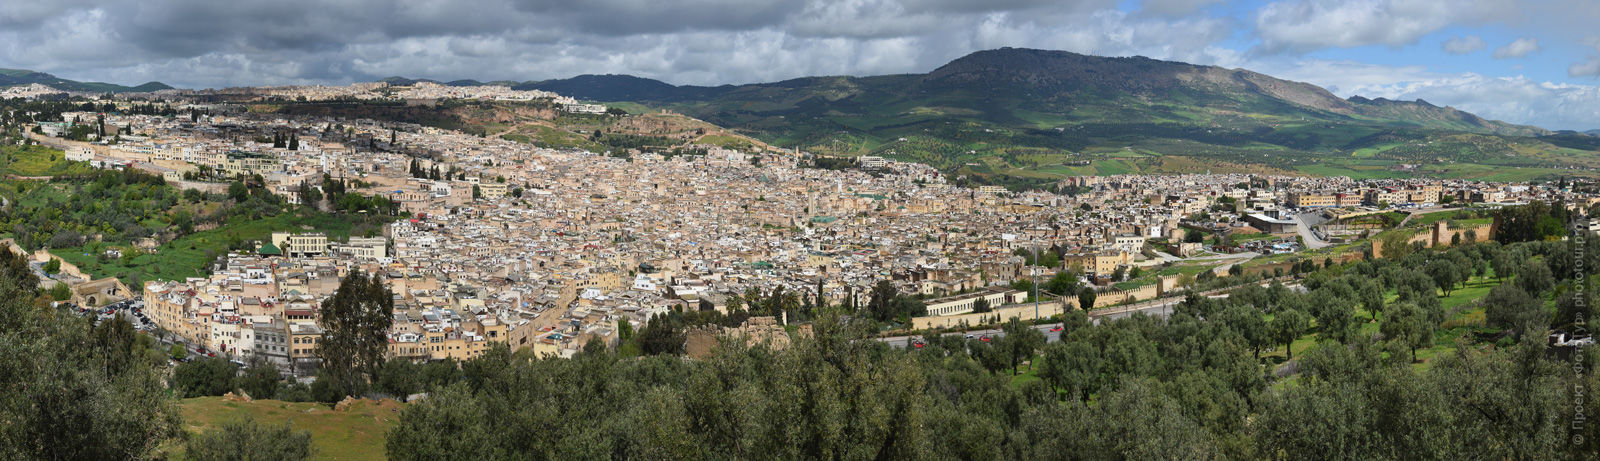 Panorama of the medina of Fez, Morocco, photo tour of Morocco, October 2018.